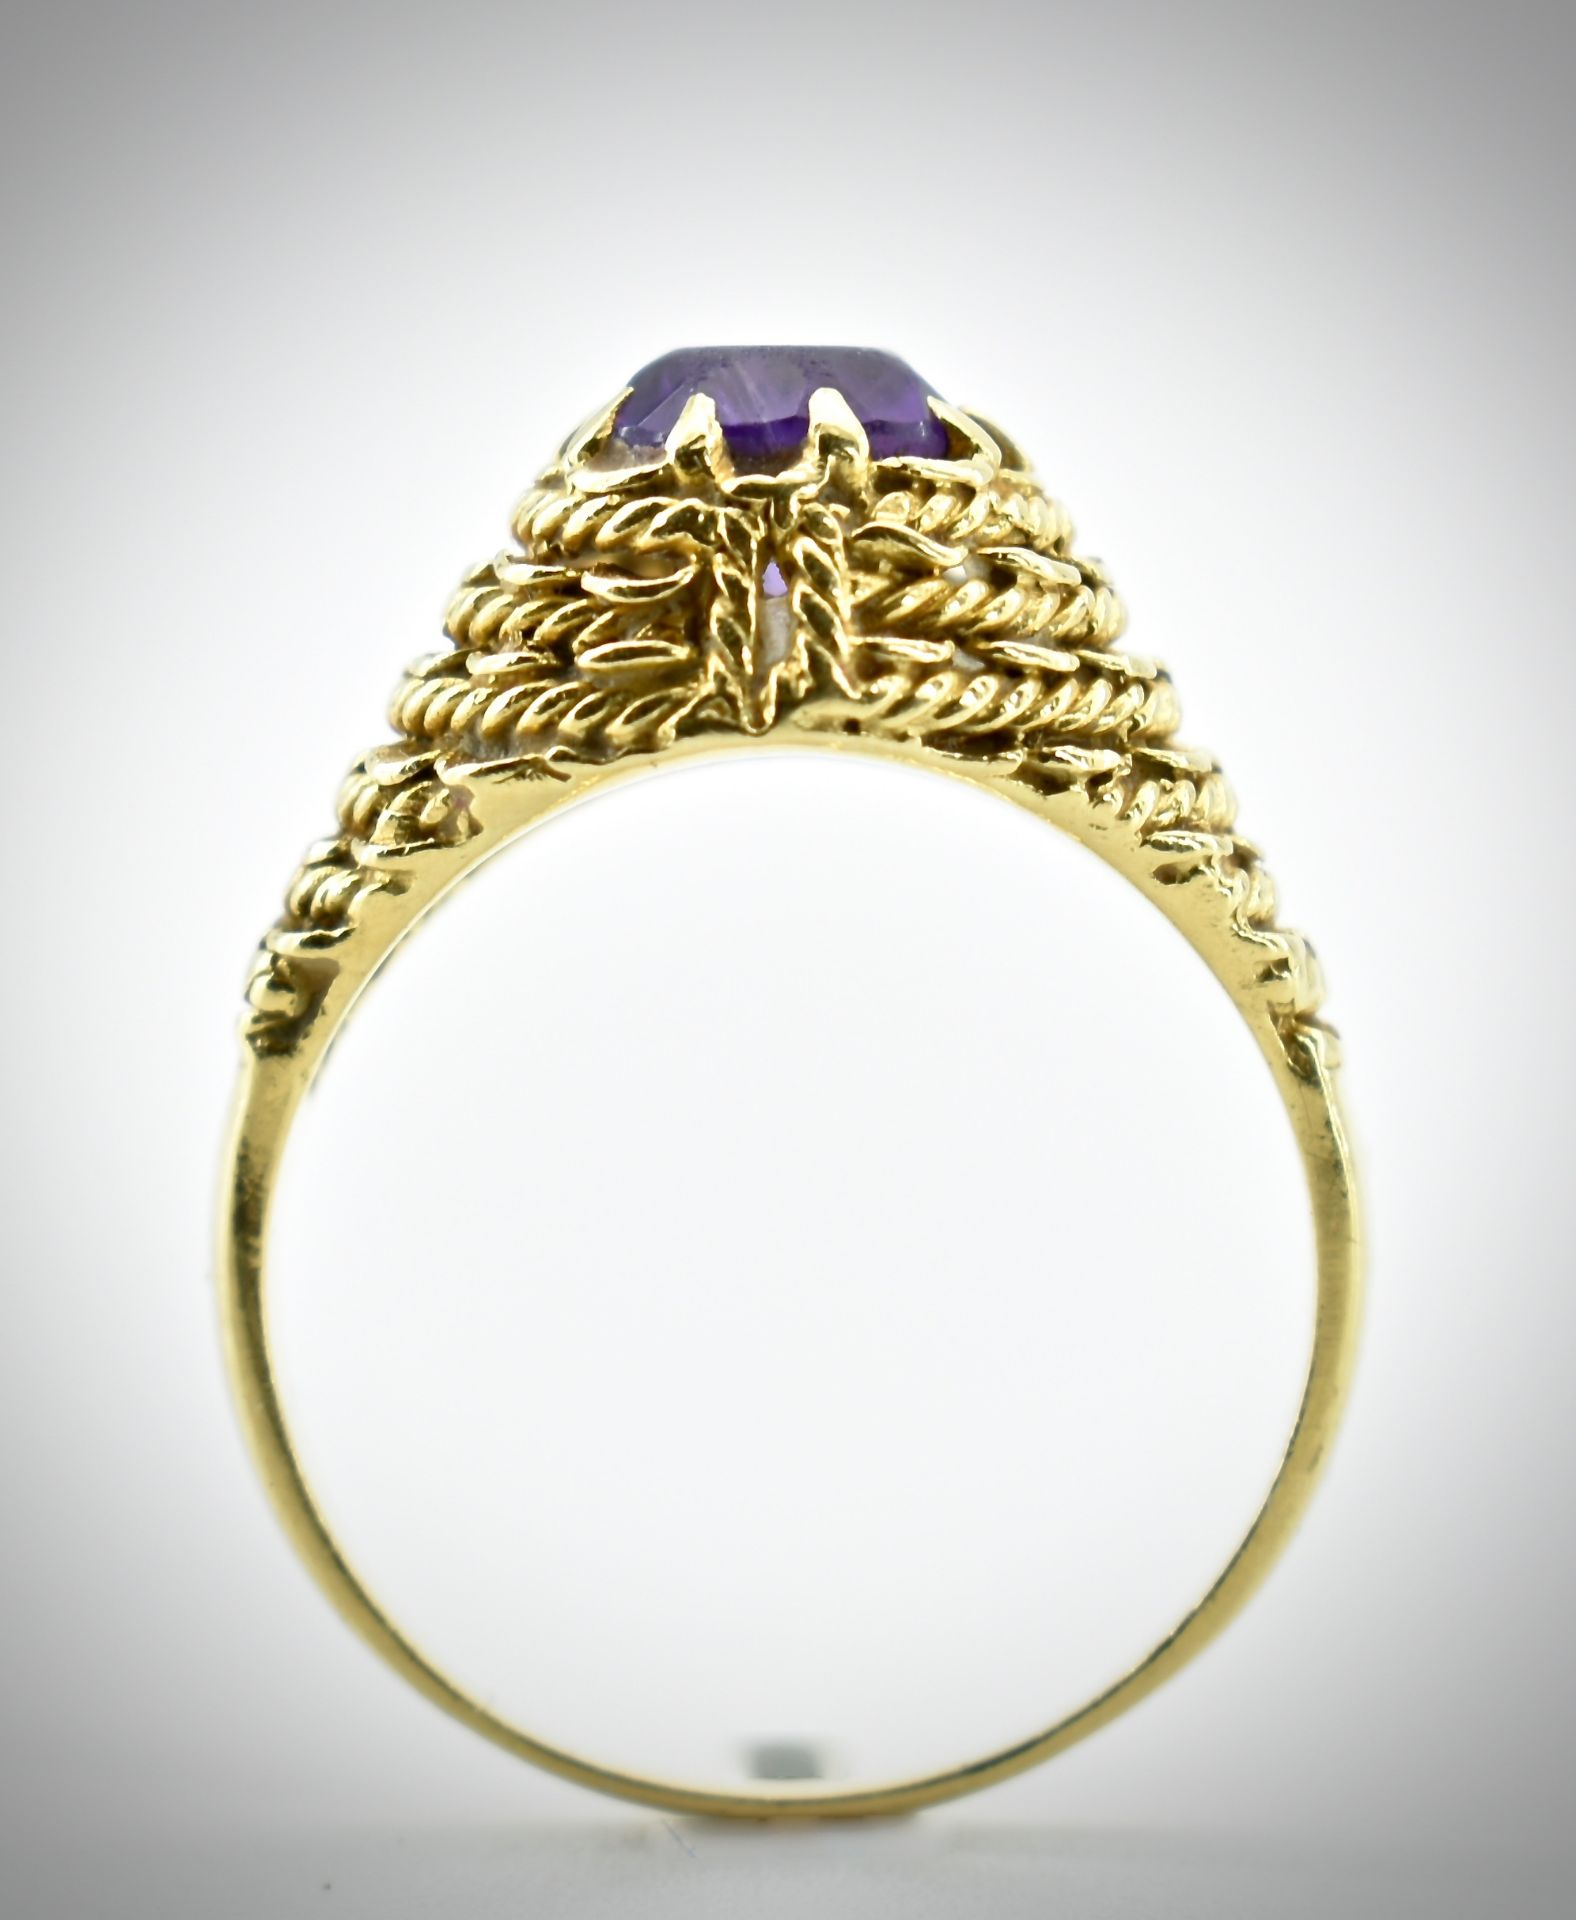 18ct Gold & Amethyst Ring - Image 5 of 7